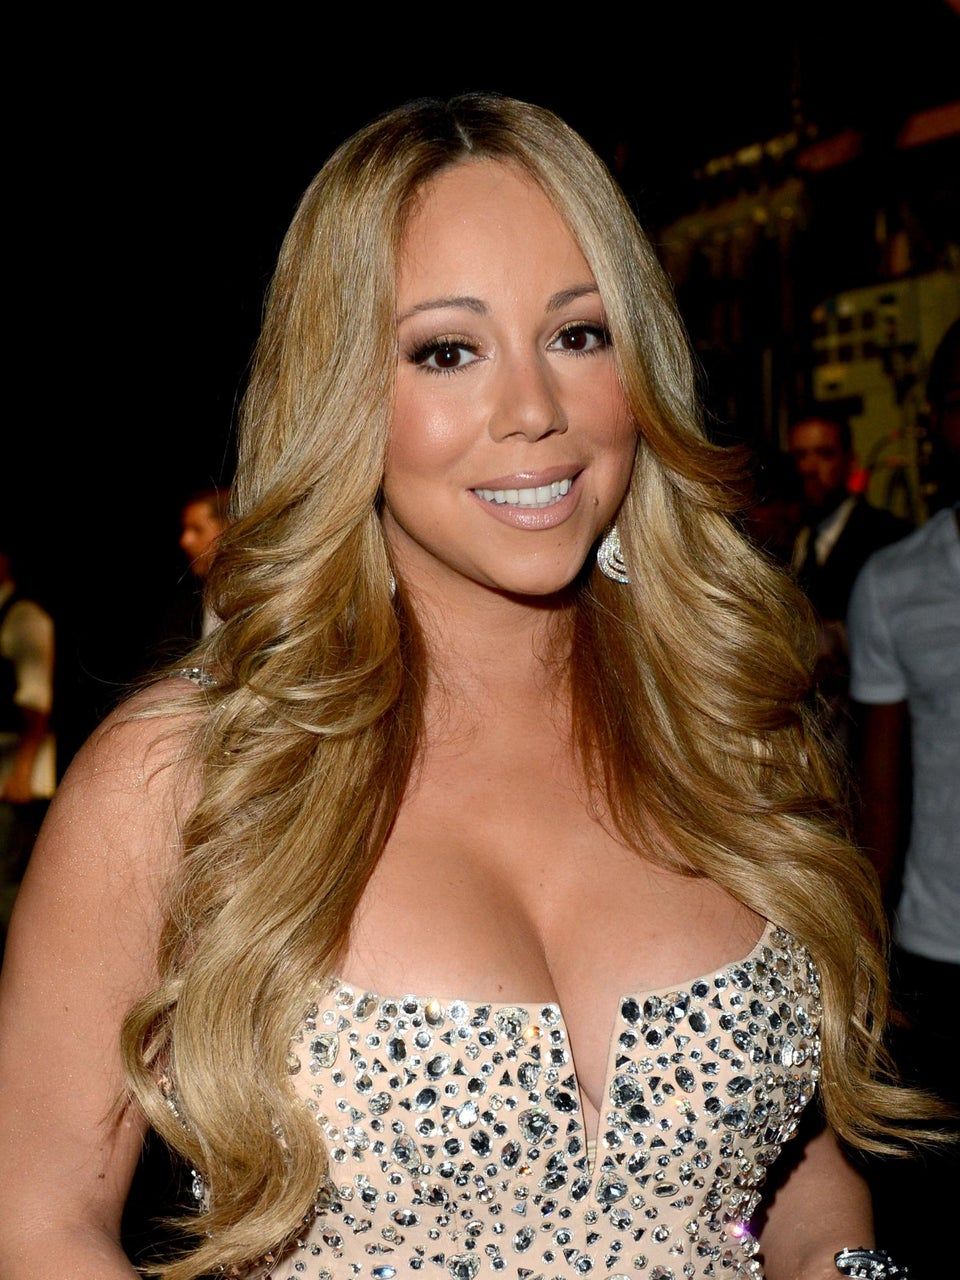 Must-Listen: Hear Mariah Carey's New Song 'Beautiful' Featuring Miguel